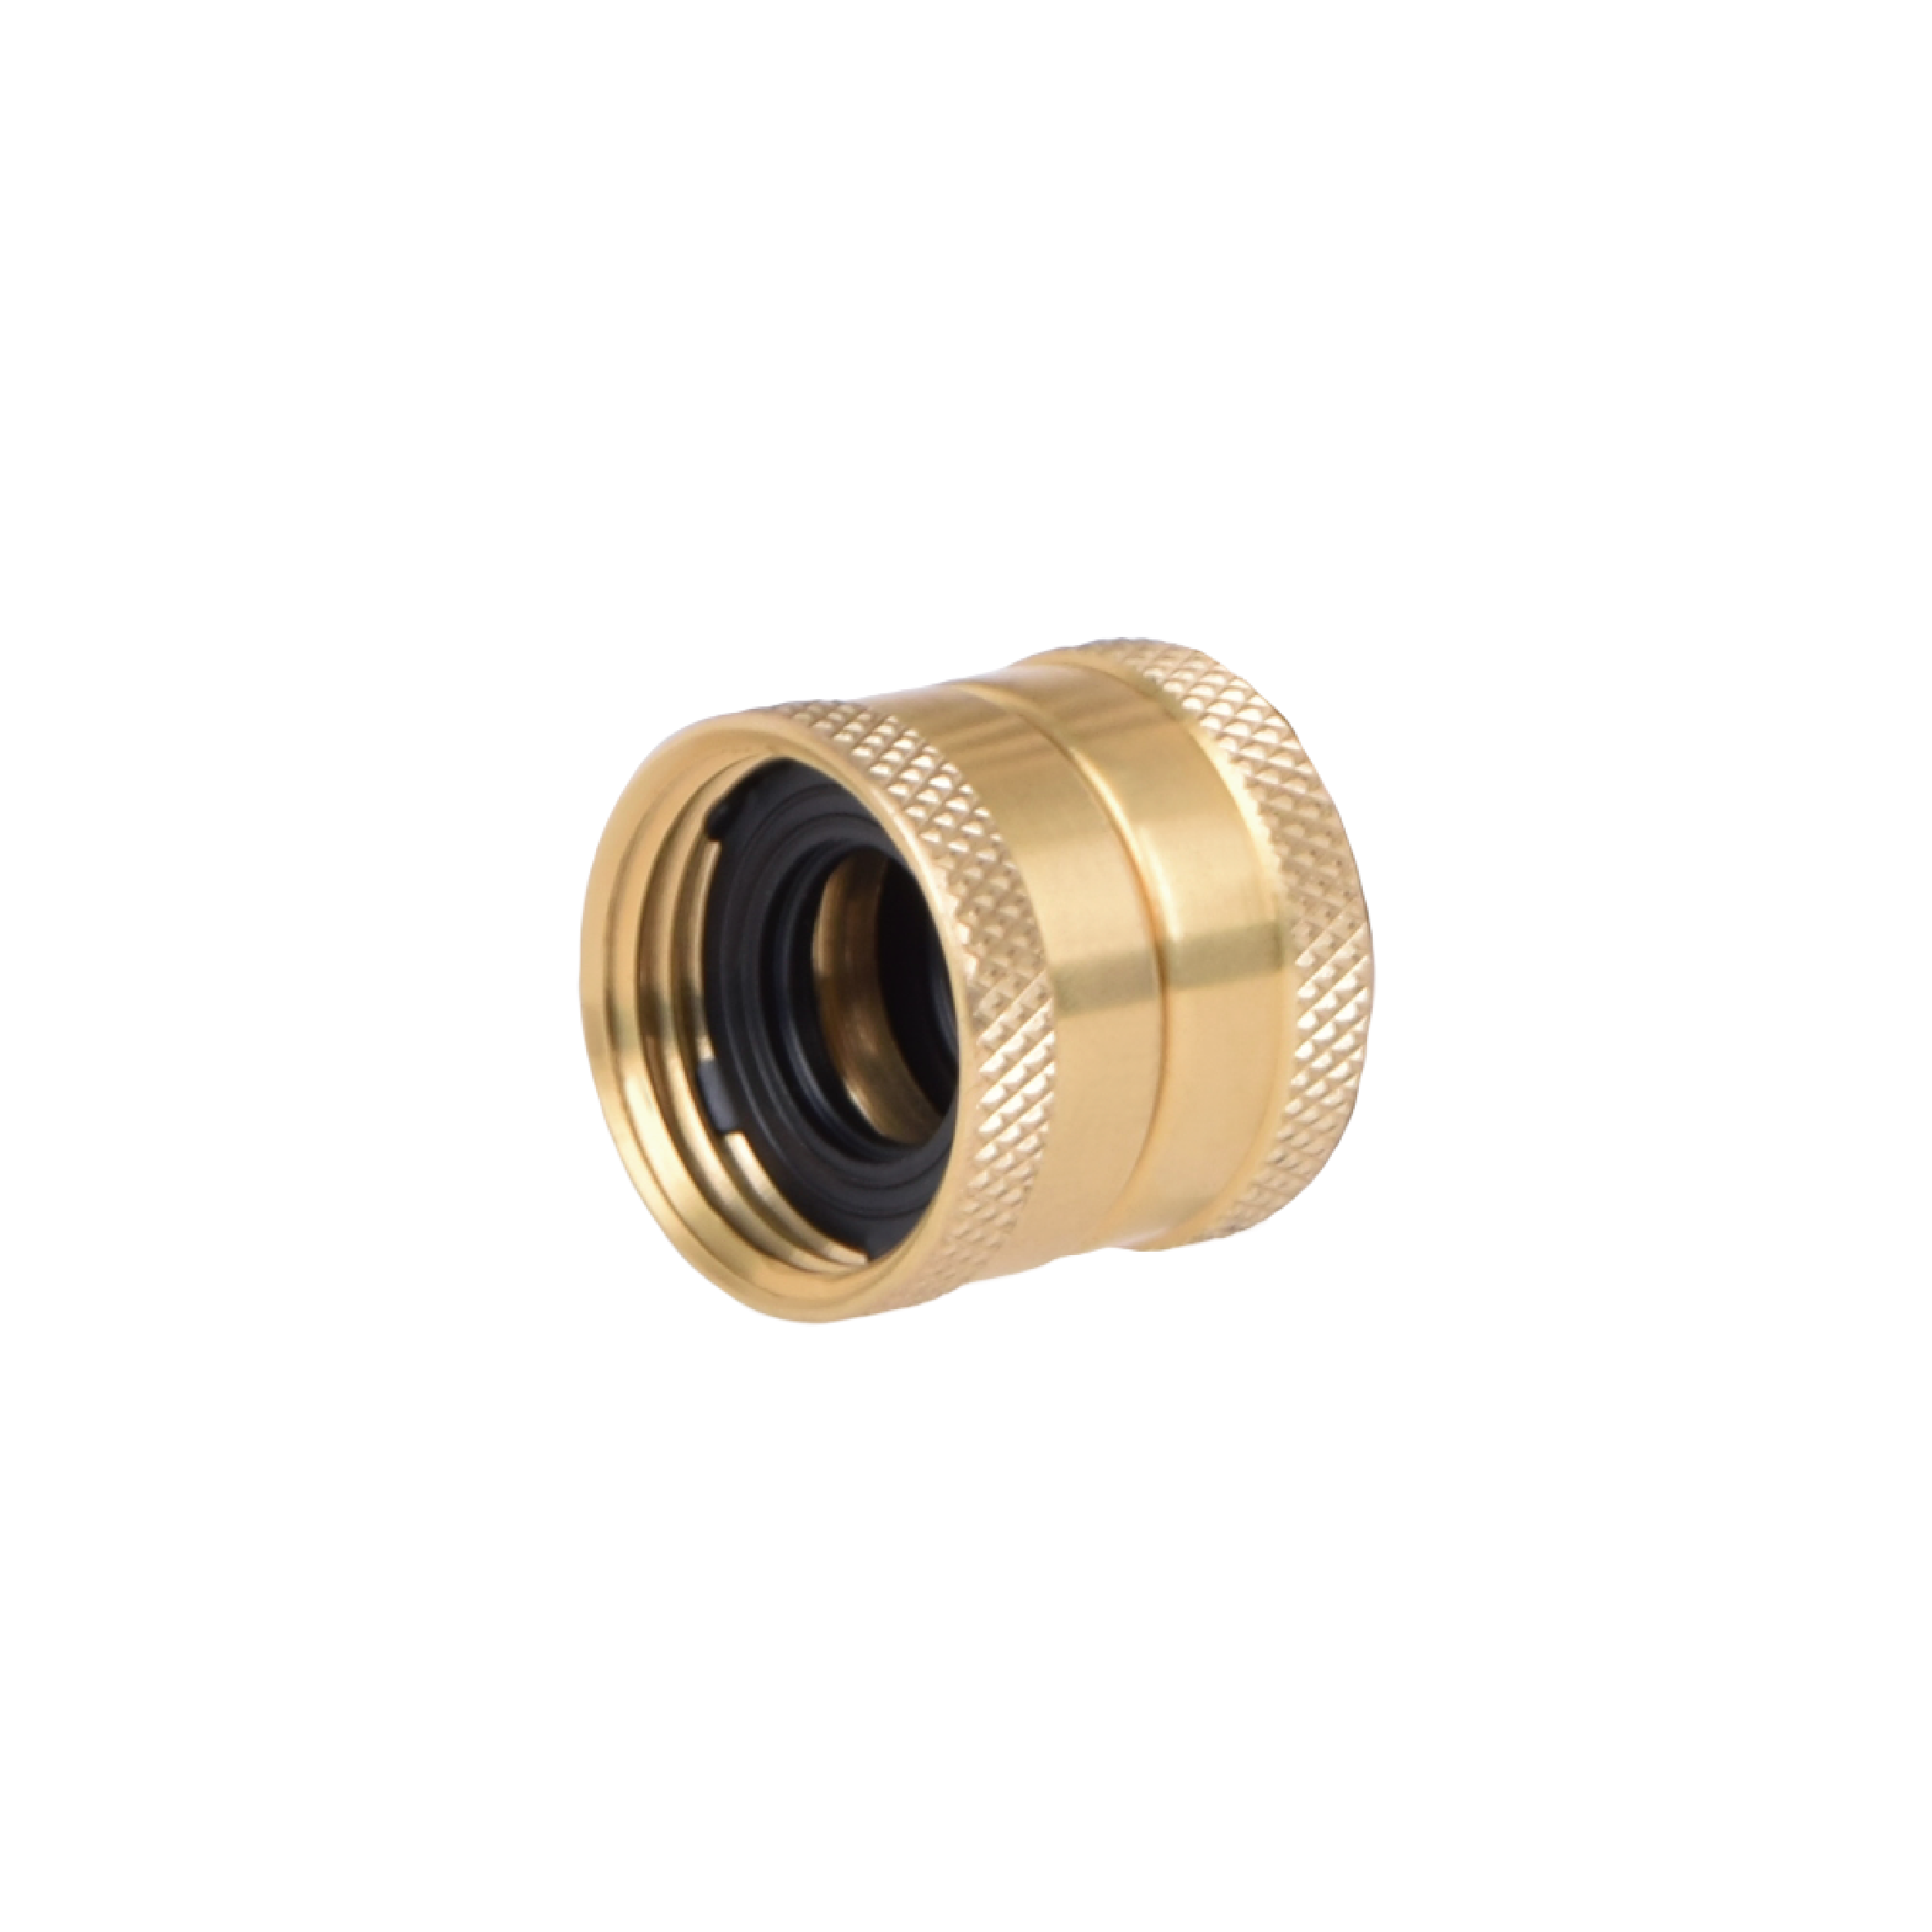 HOSE ADAPTER DOUBLE SWIVEL 3/4FH - 3/4FH